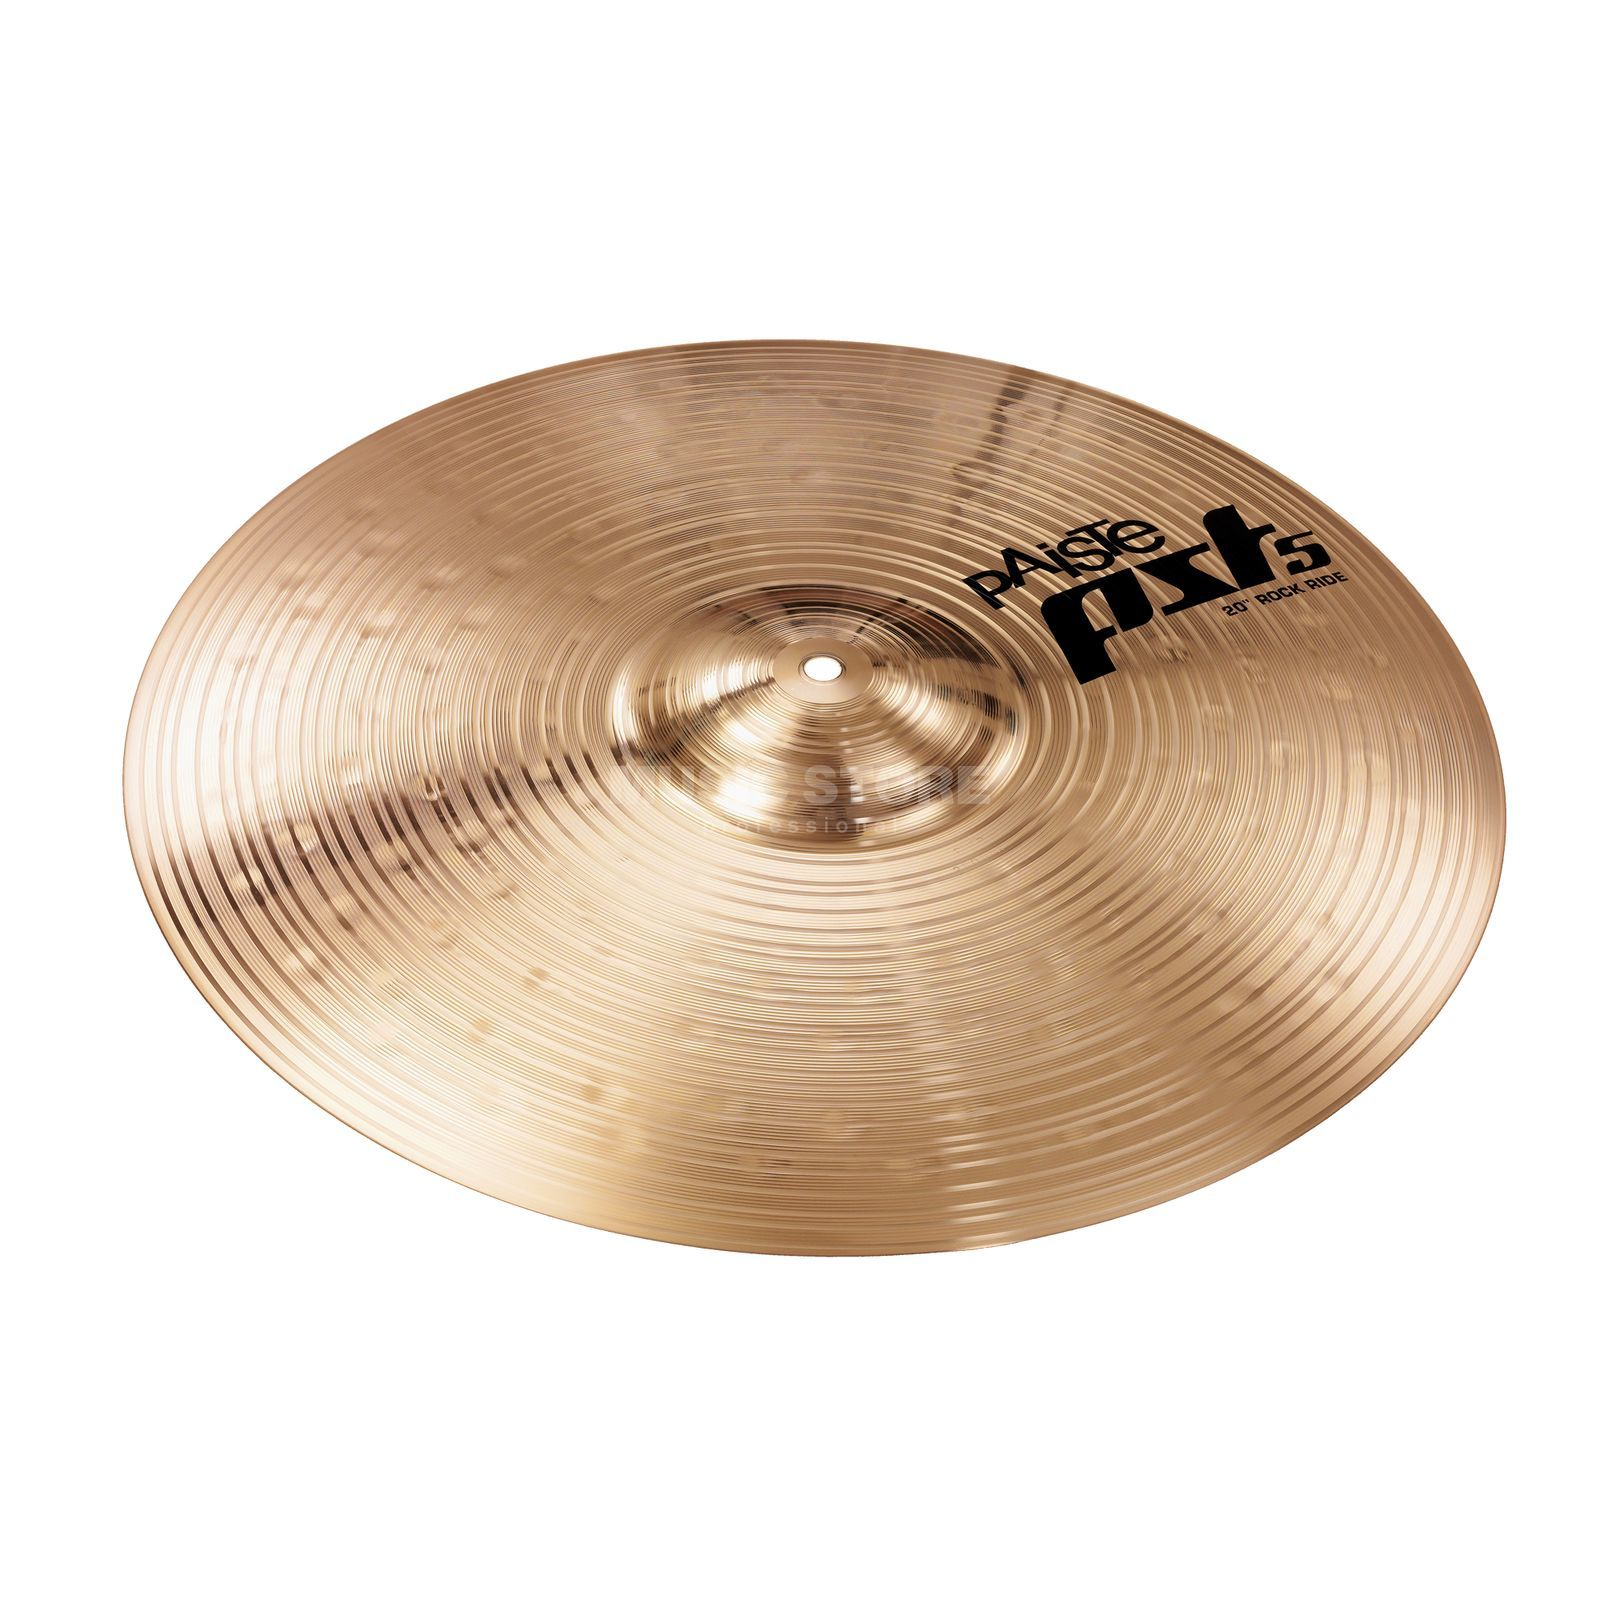 "Paiste PST5 Rock Ride 20"", Version 2014 Produktbild"